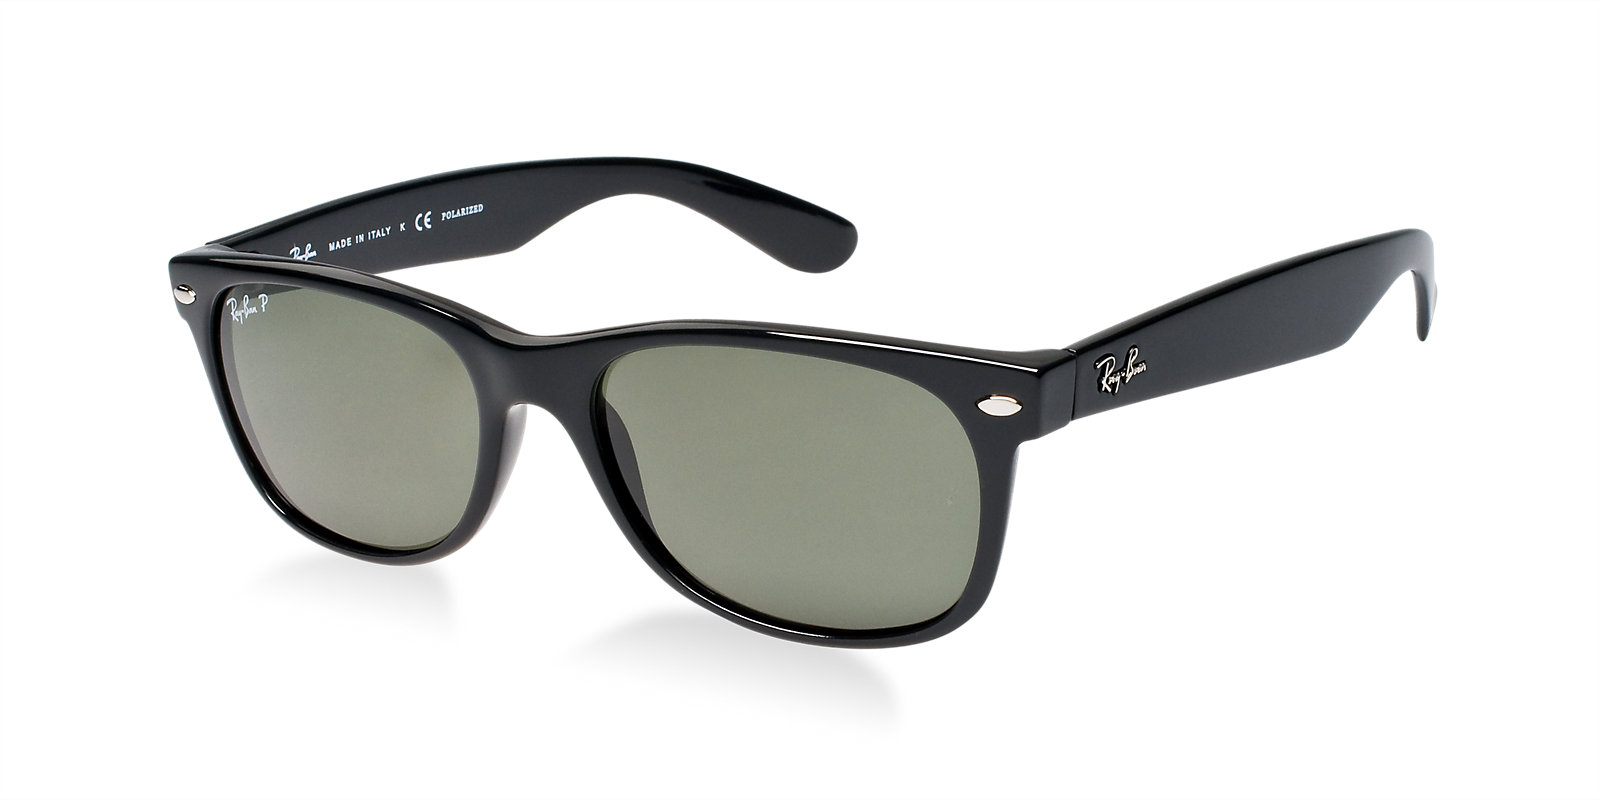 rb2132 90158 polarized black angle. Previous  Next. Previous  Next. RAY-BAN  RB2132 901 58 BLACK POLARIZED NEW WAYFARER SUNGLASSES 7da463d1ce